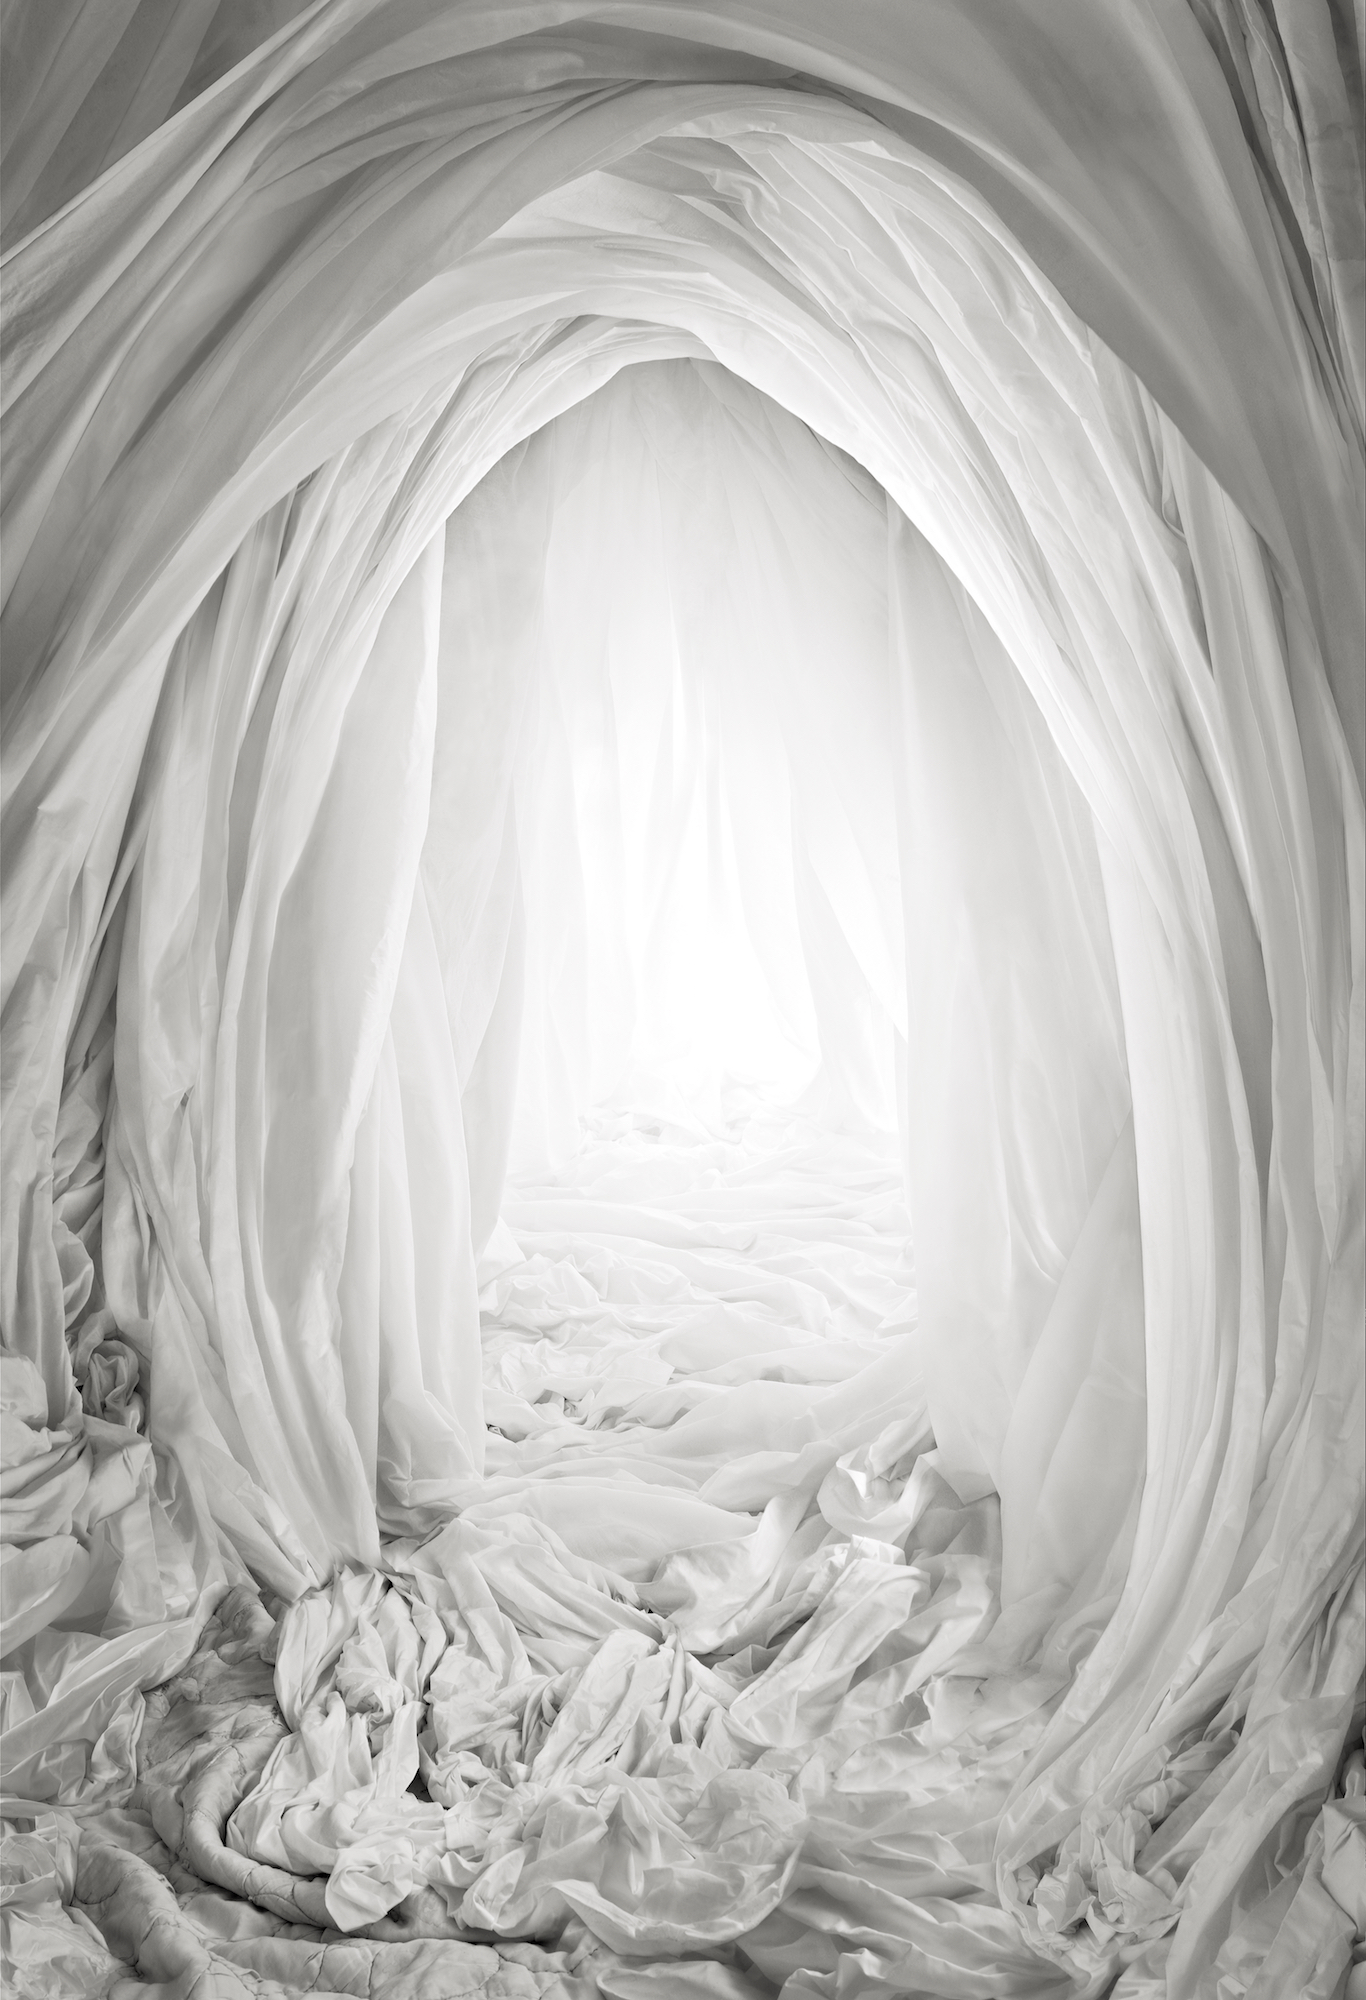 Lucid Cave, 2020, Silver gelatin print mounted on aluminium, museum glass, walnut frame, 146 x 101 cm, edition of 5